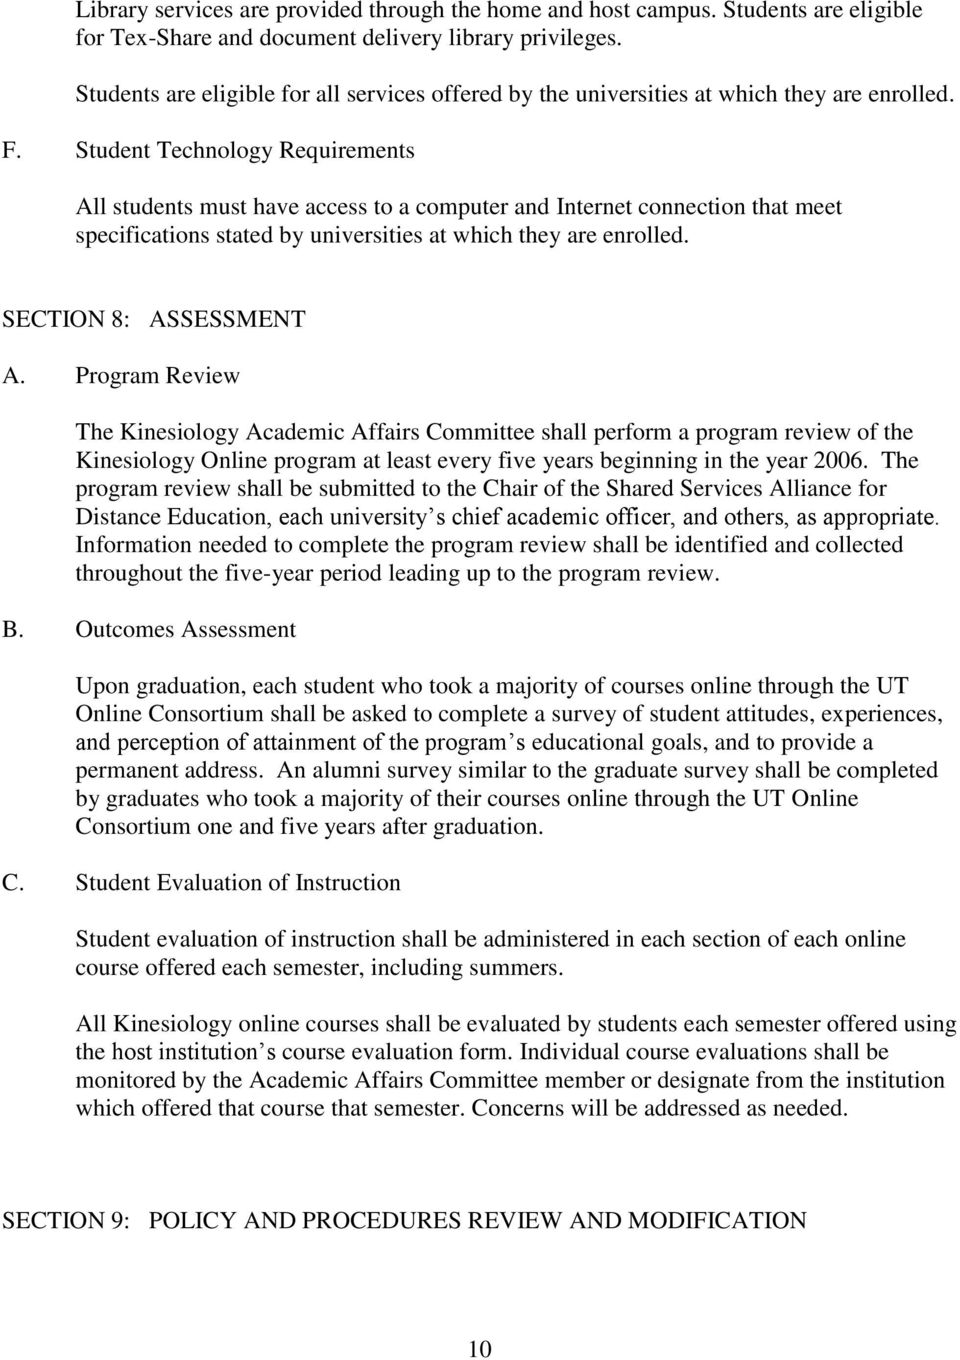 Student Technology Requirements All students must have access to a computer and Internet connection that meet specifications stated by universities at which they are enrolled. SECTION 8: ASSESSMENT A.